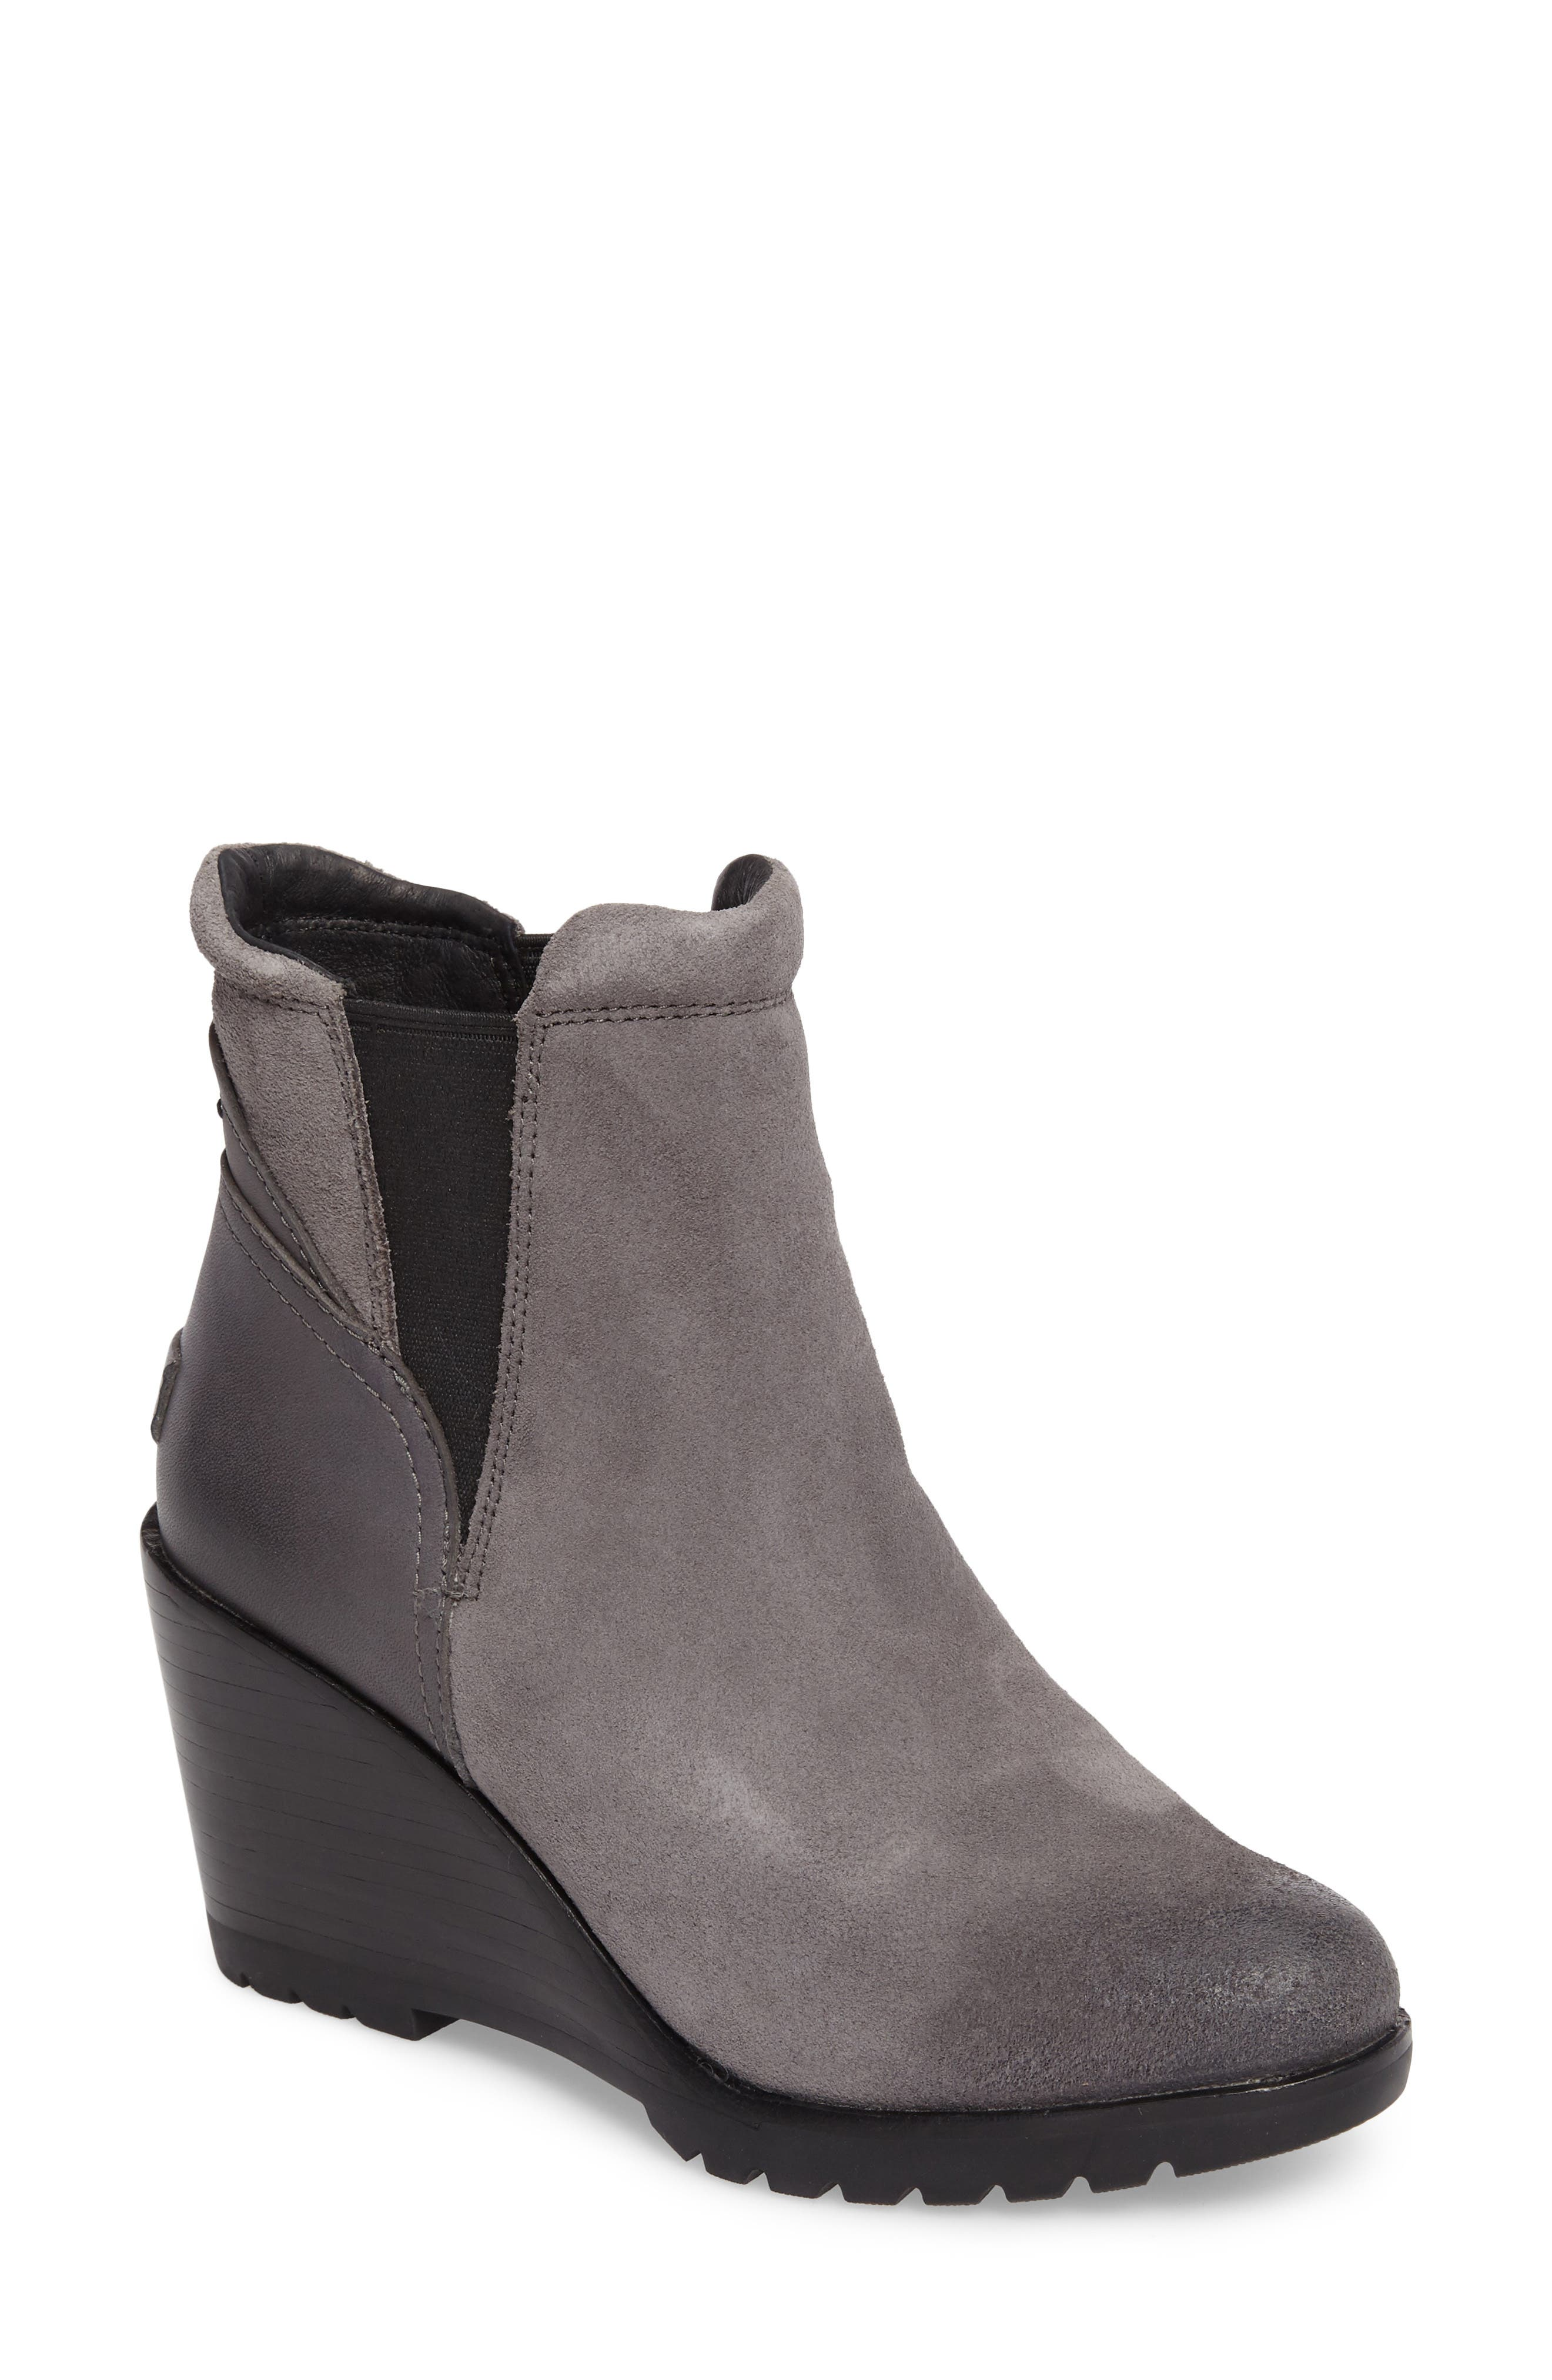 After Hours Chelsea Boot,                             Main thumbnail 1, color,                             Quarry